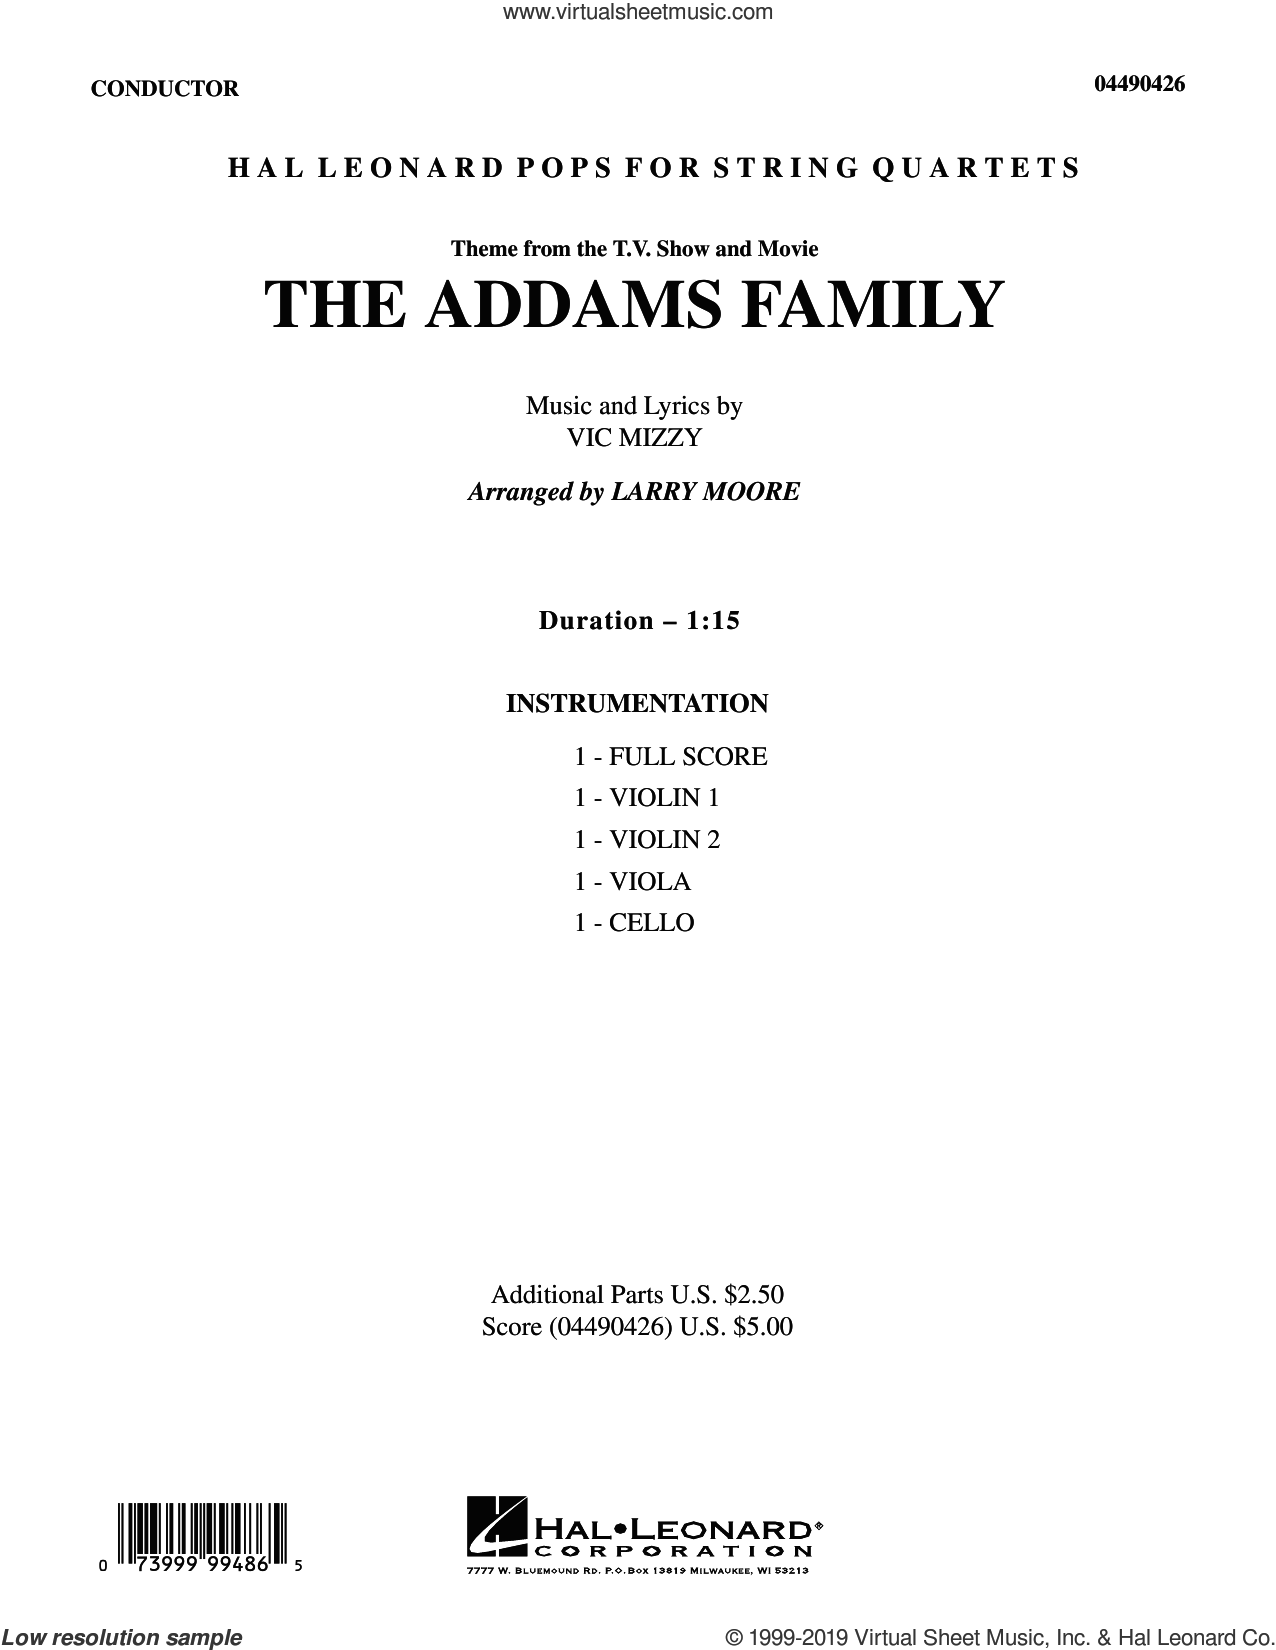 The Addams Family (Theme) (COMPLETE) sheet music for string quartet (Strings) by Larry Moore and Vic Mizzy, intermediate orchestra